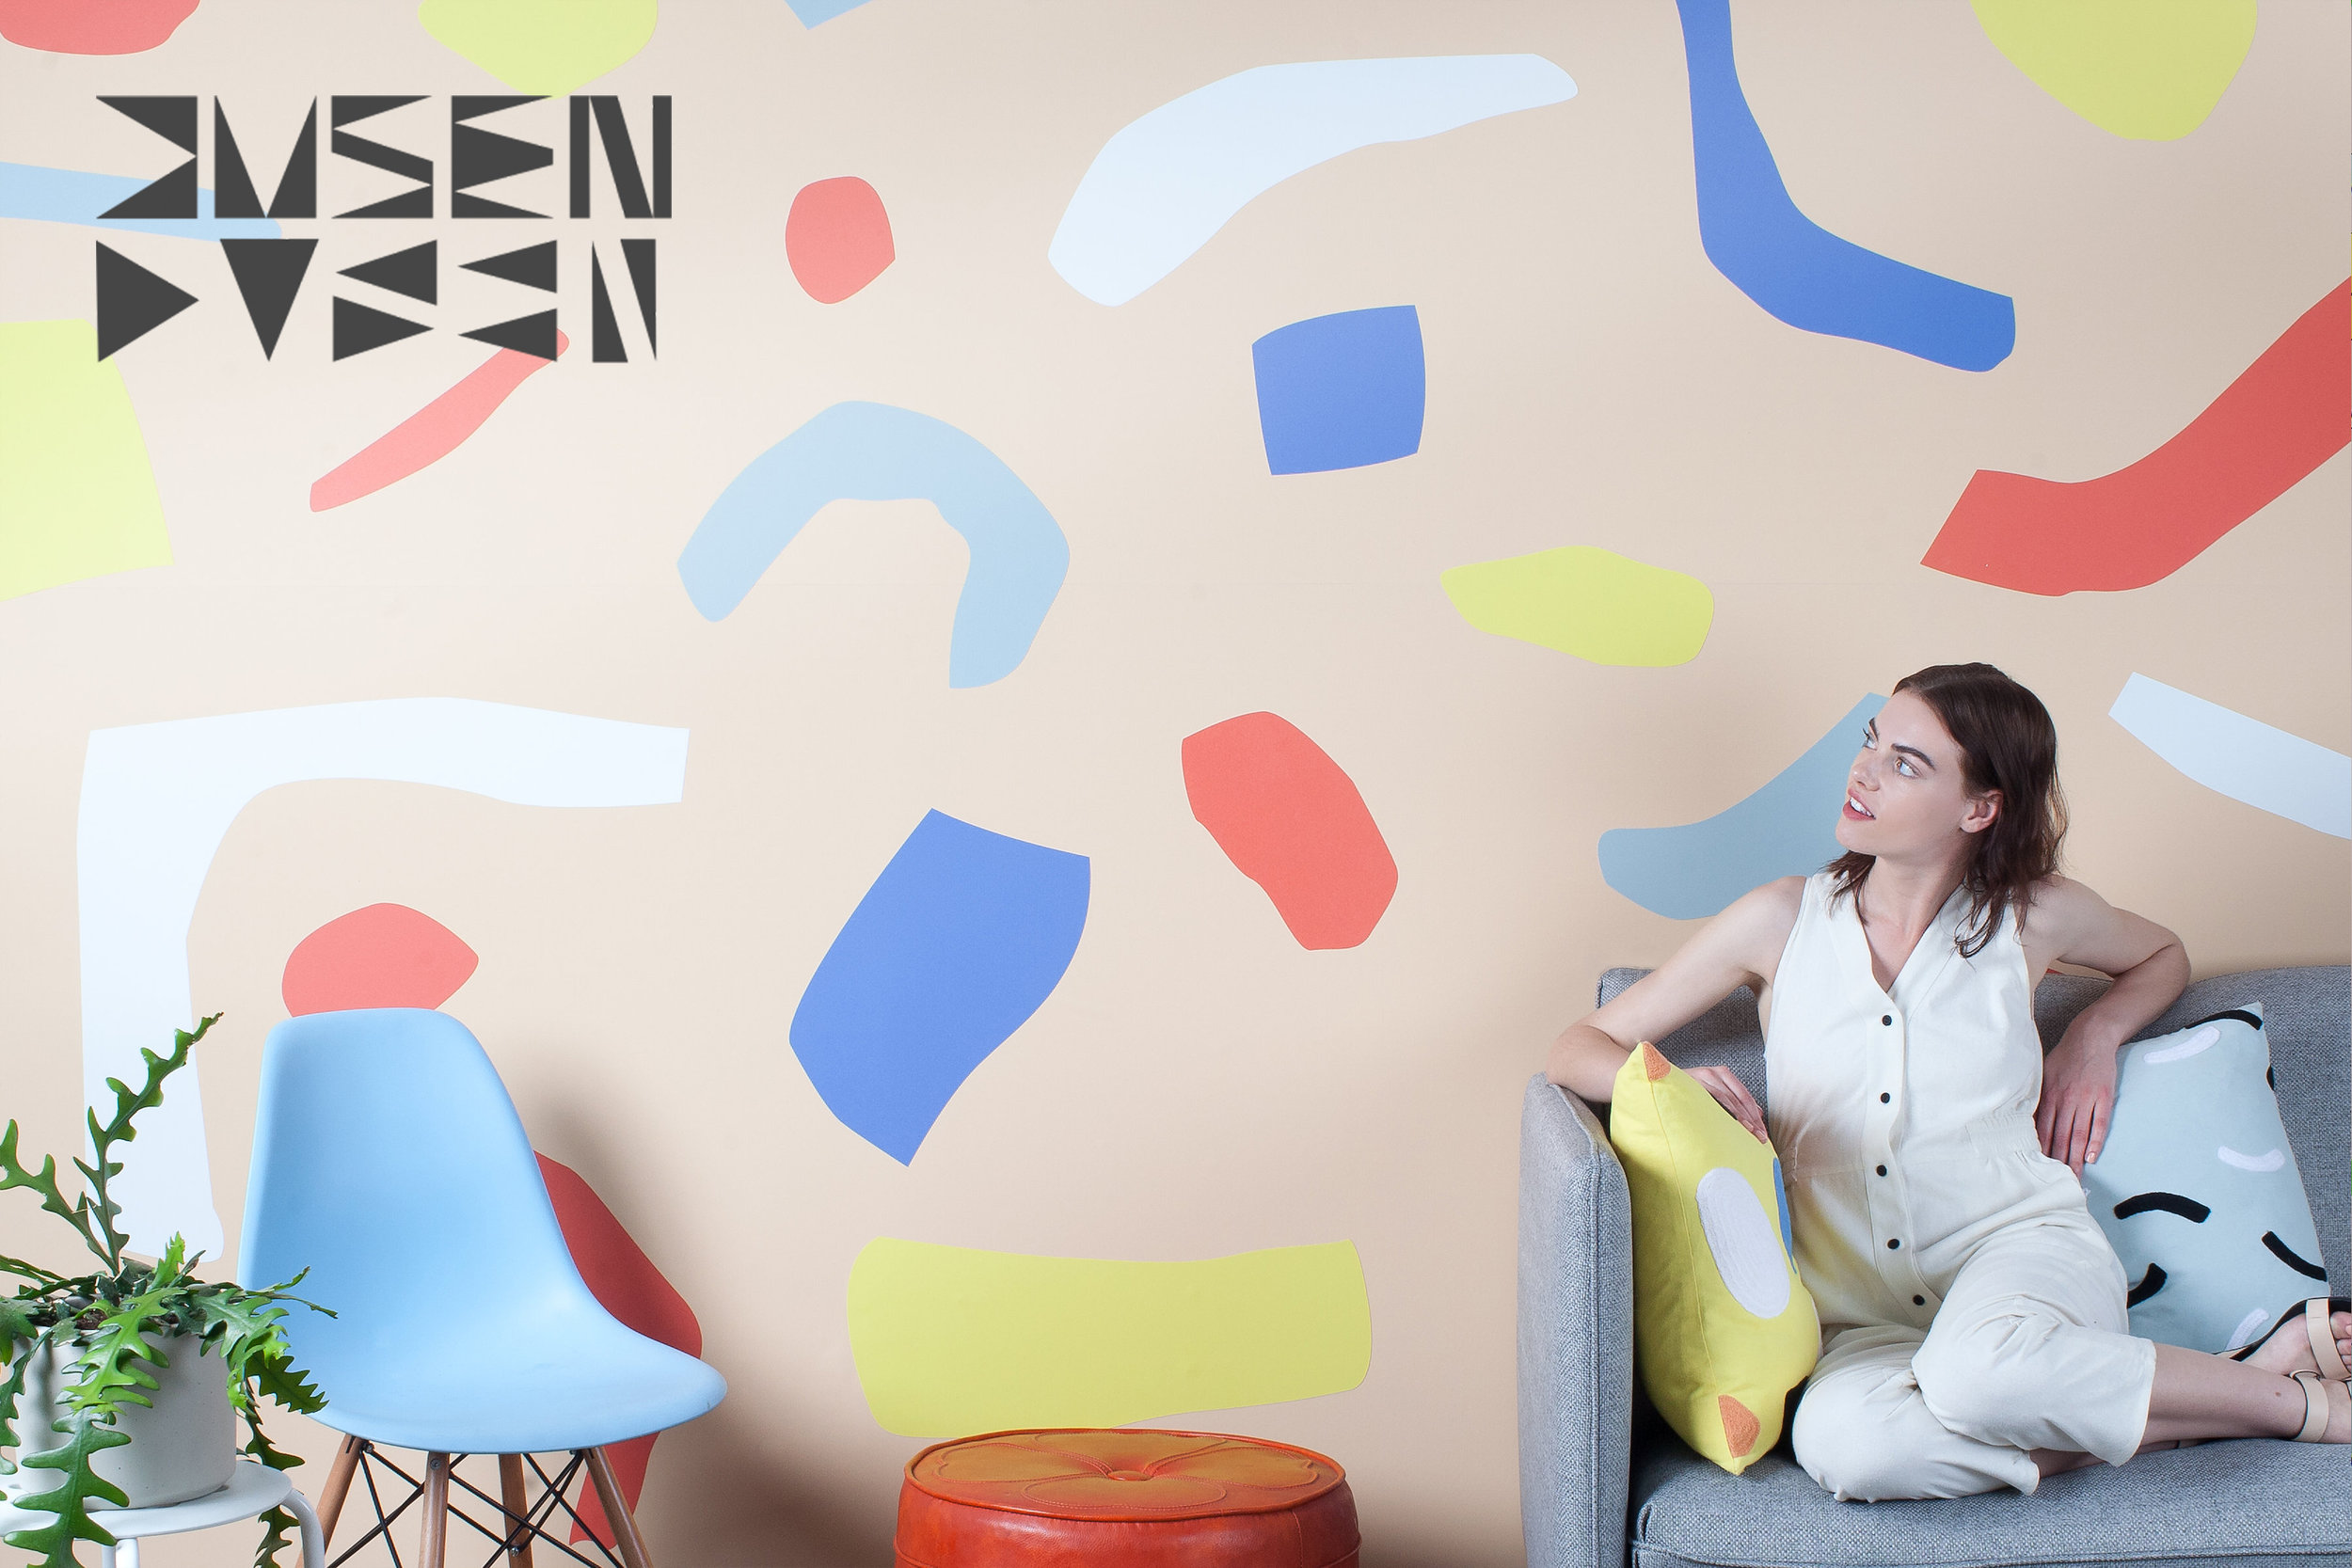 dusen dusen - Designer: Dusen DusenVIEW COLLECTIONA line of bold and playful magnetic wall coverings with ability to rearrange the shapes and patterns.